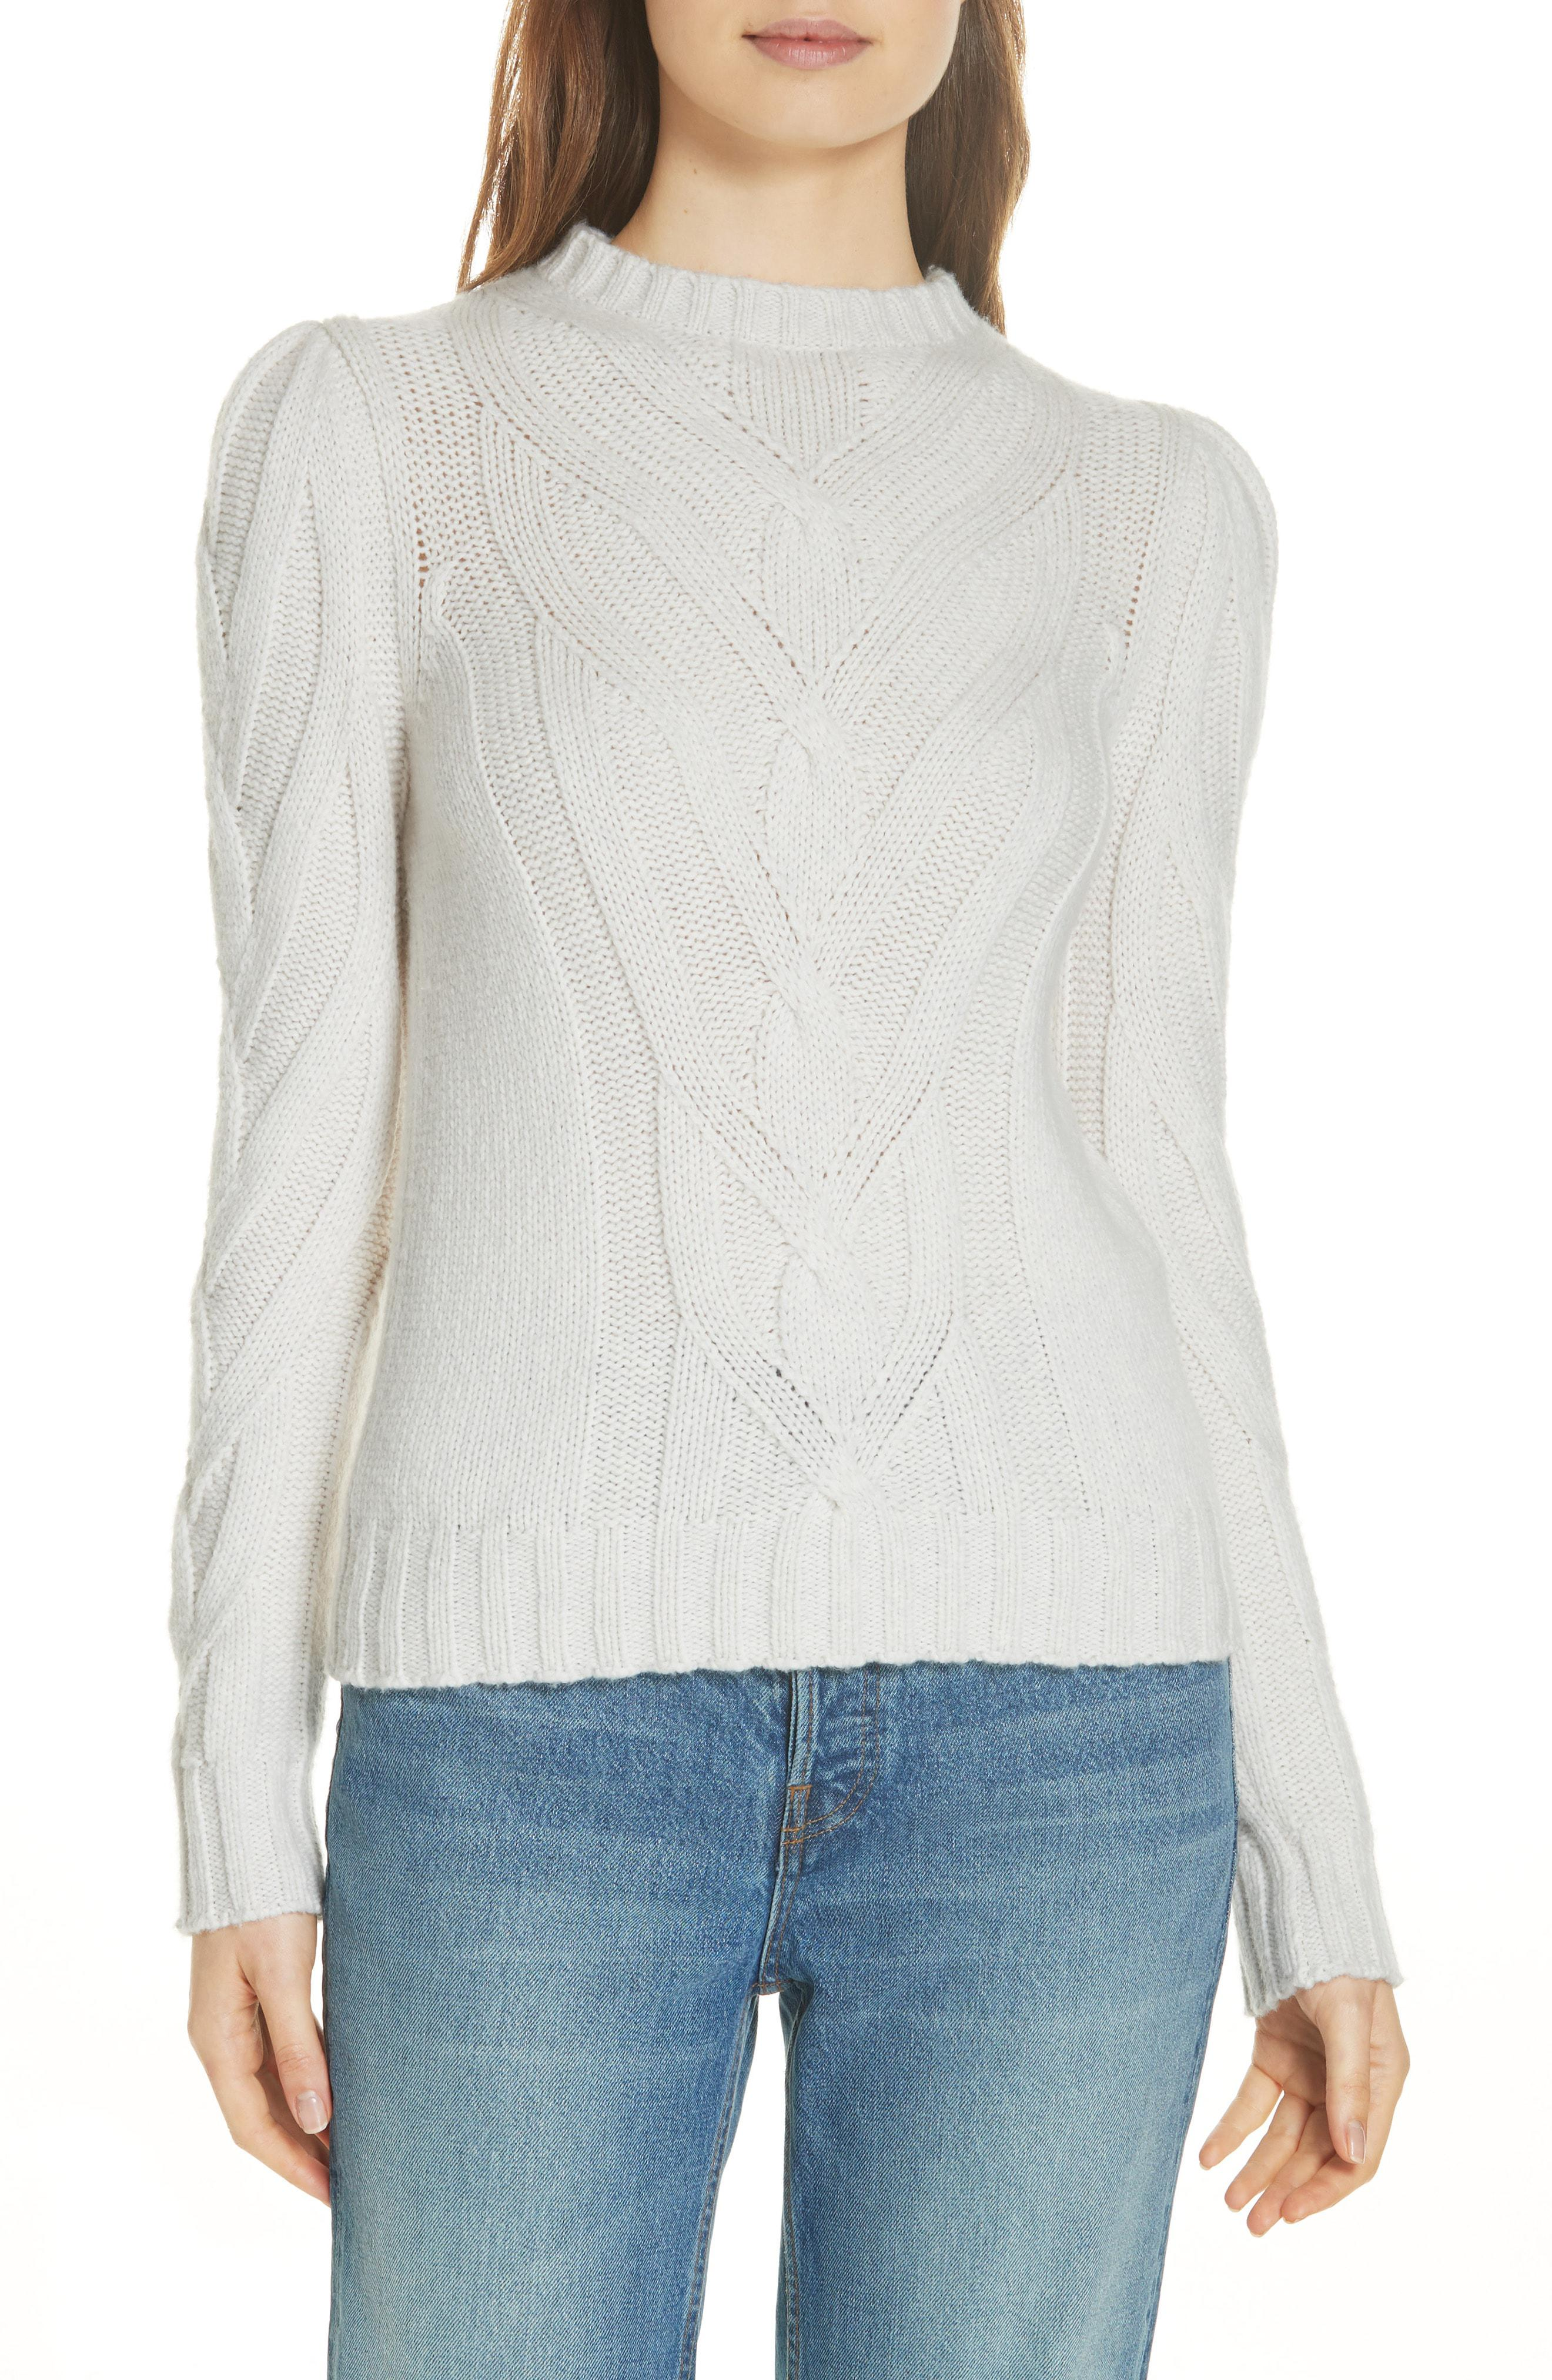 4fbb08ff2 Lyst - La Vie Rebecca Taylor Cozy Cable Sweater